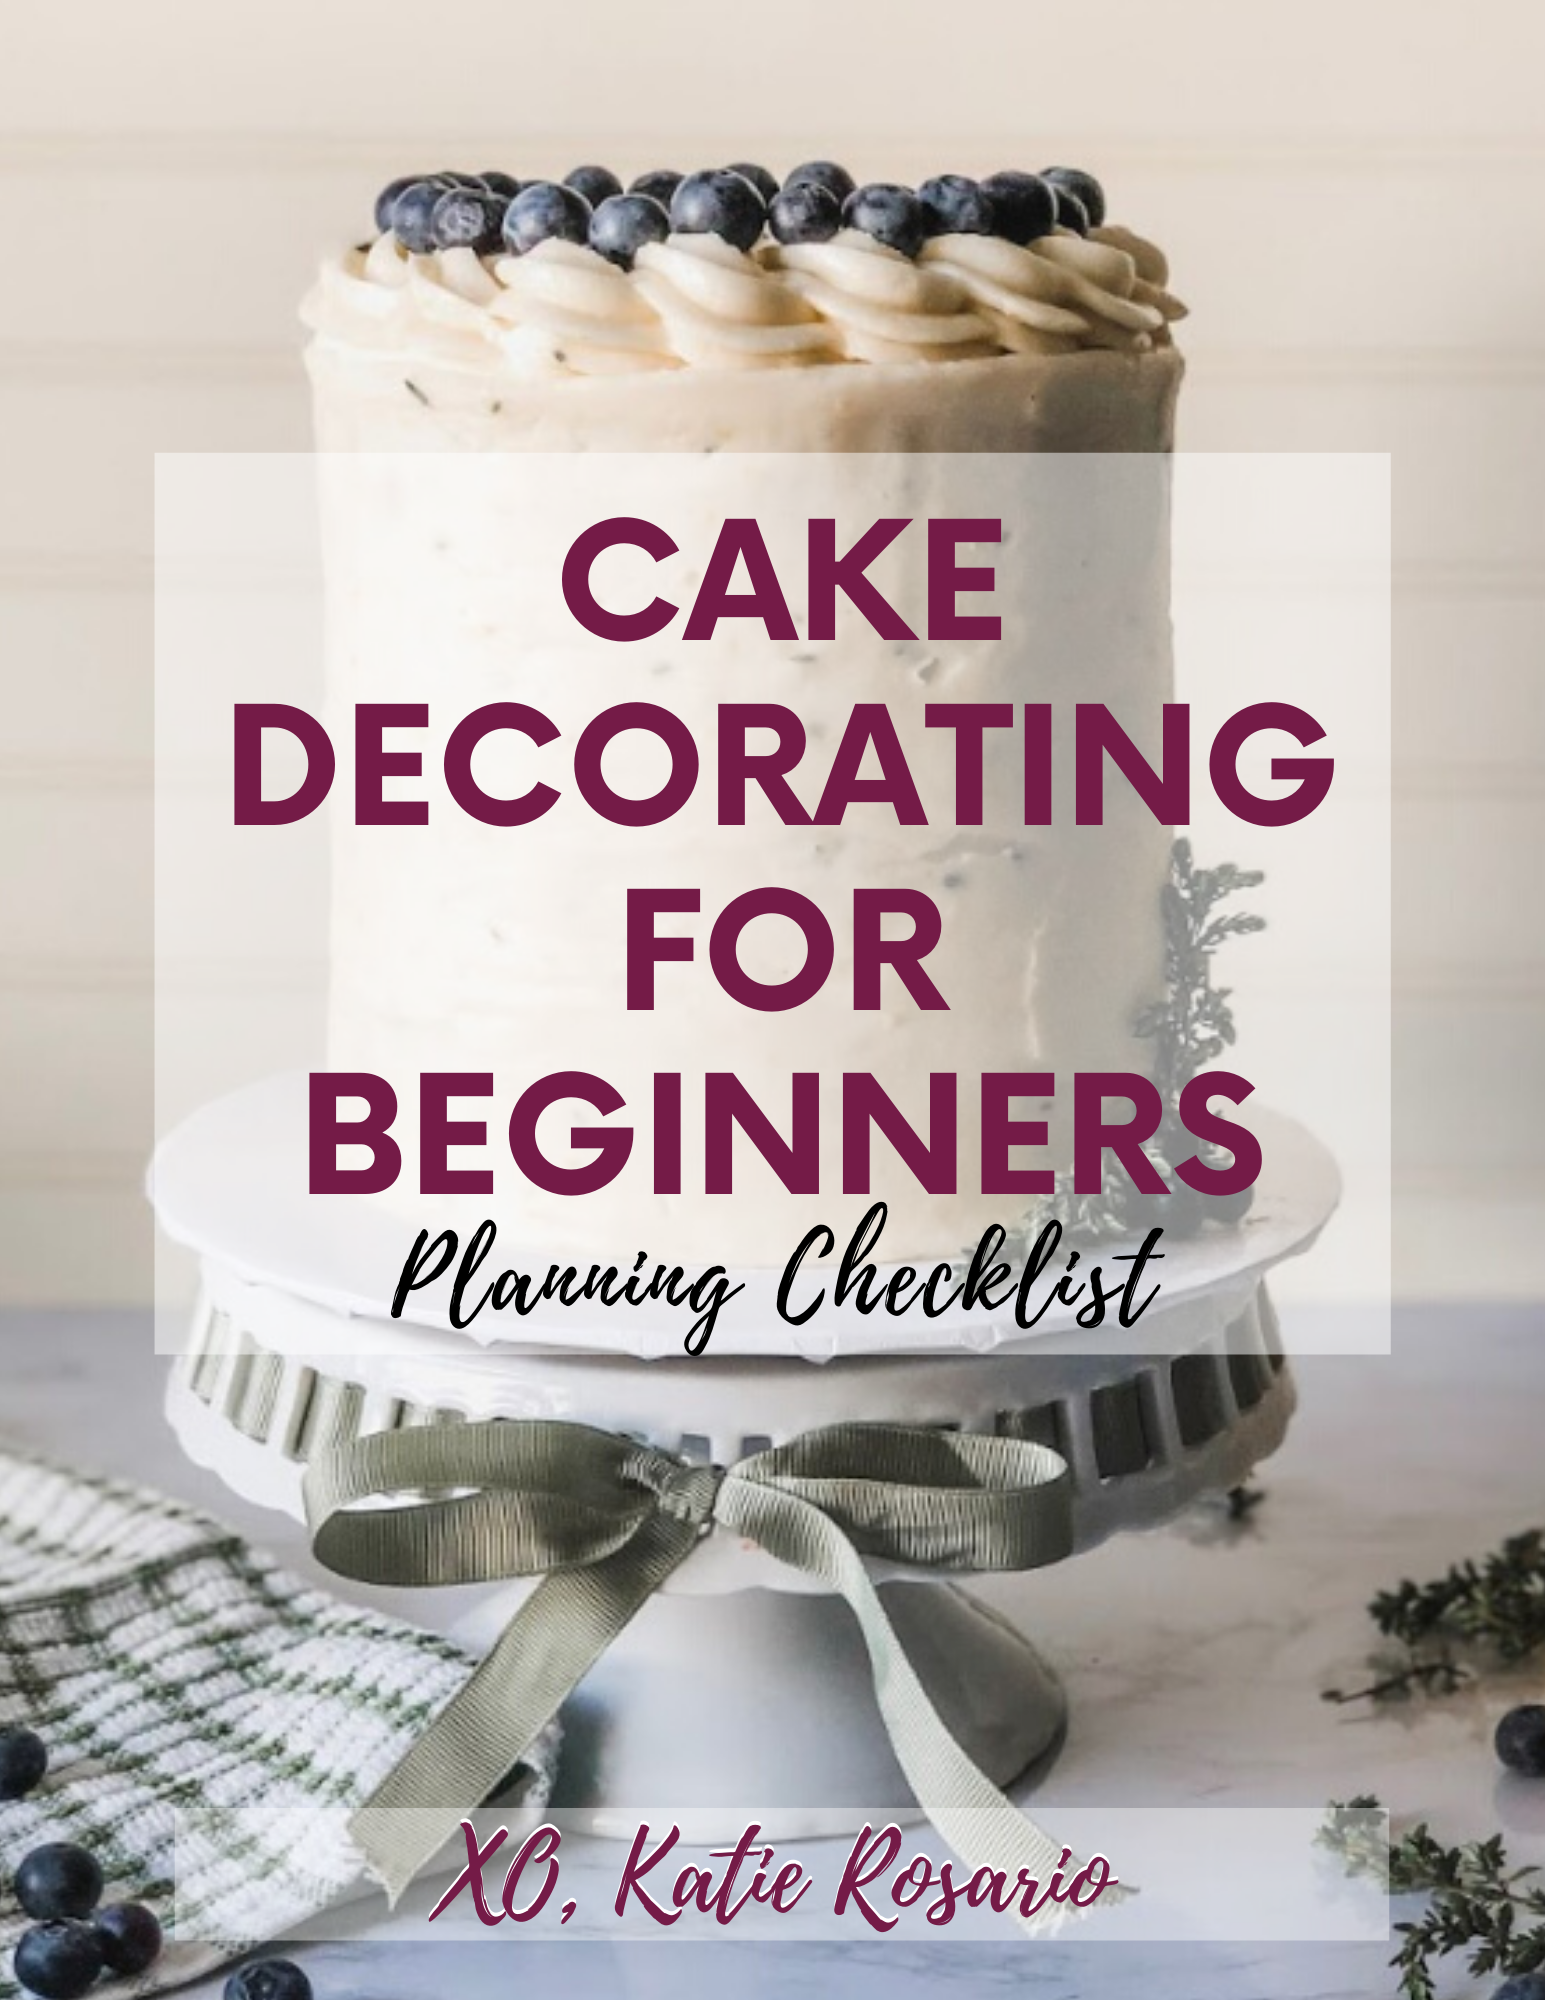 This is a general plan and checklist that you'll use every time you make a cake. Start with baking the cake and making the frosting even building and crumb coat the cakes.